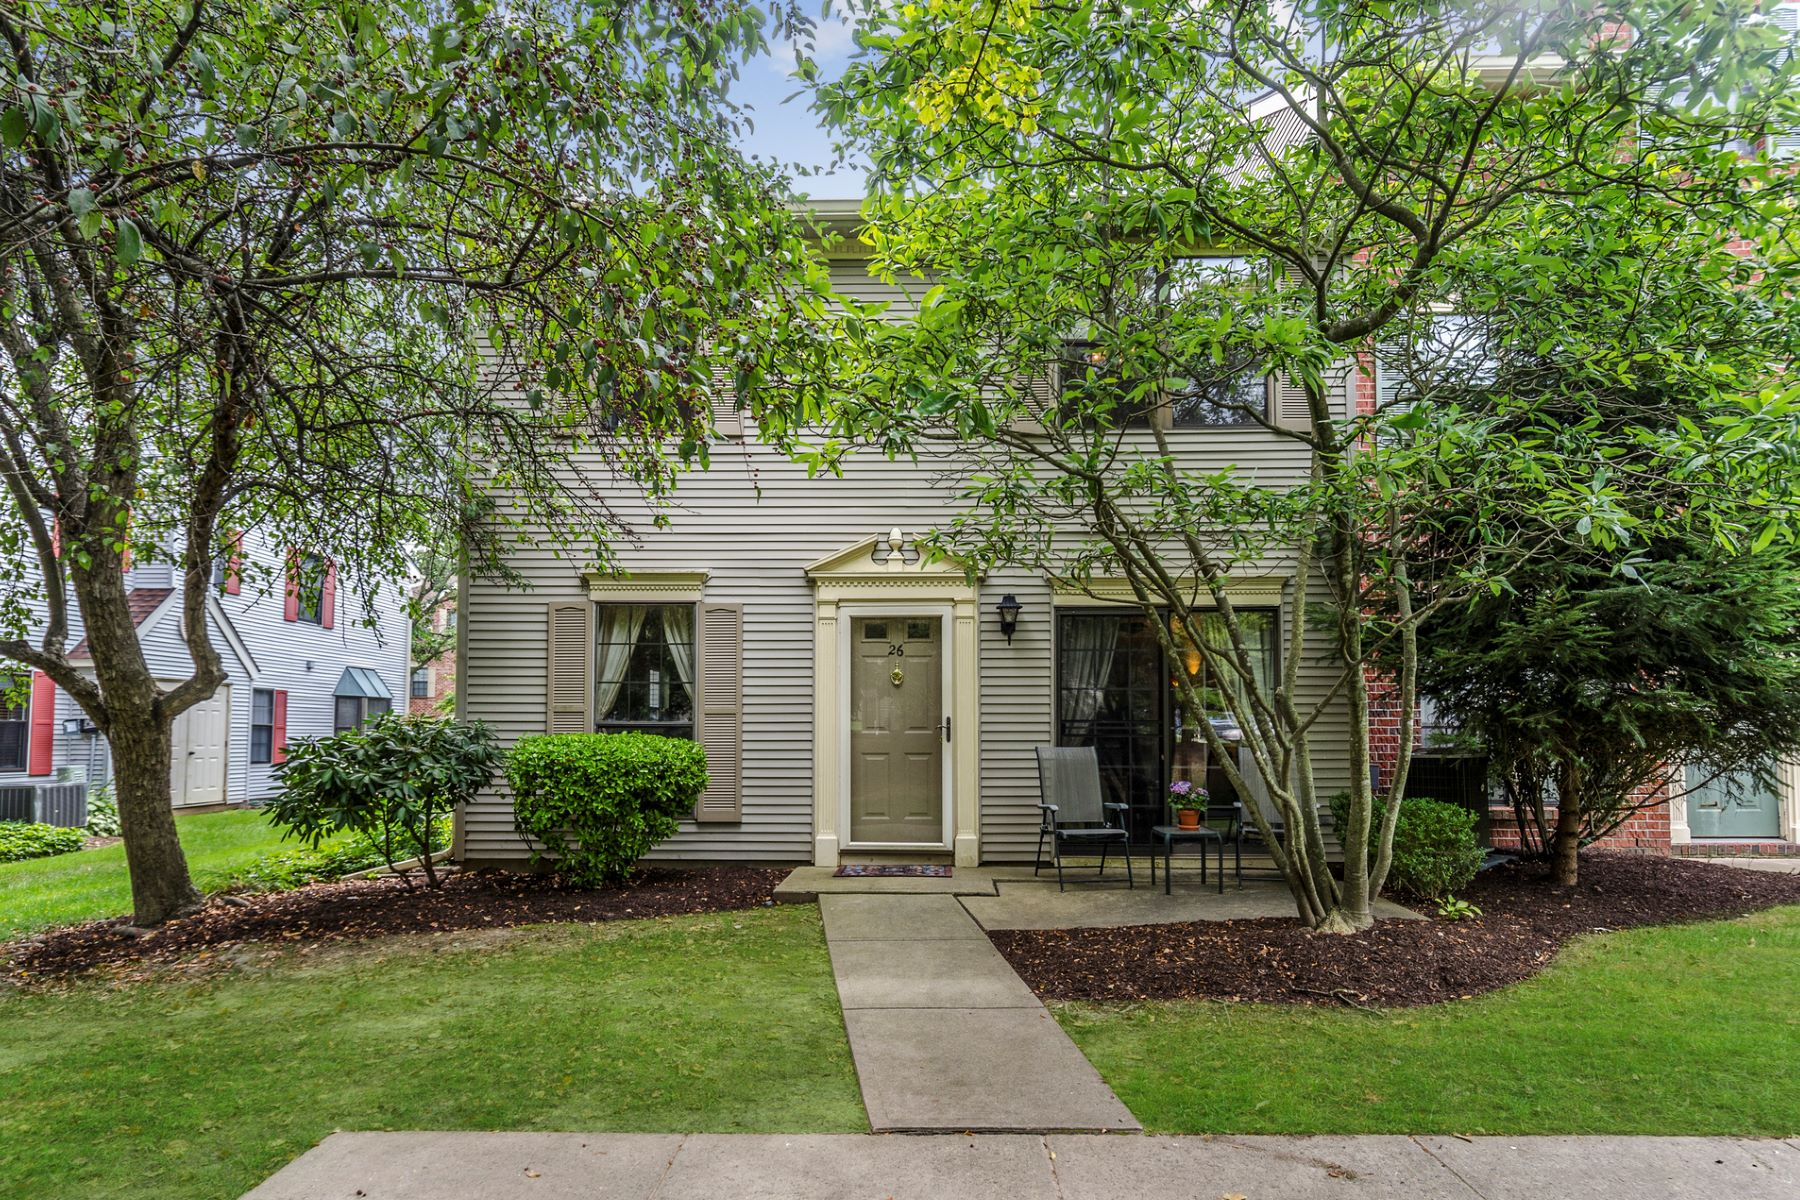 townhouses للـ Sale في Cheerful, Convenient, and Clean as a Whistle 26 Drewes Court, Lawrenceville, New Jersey 08648 United Statesفي/حول: Lawrence Township